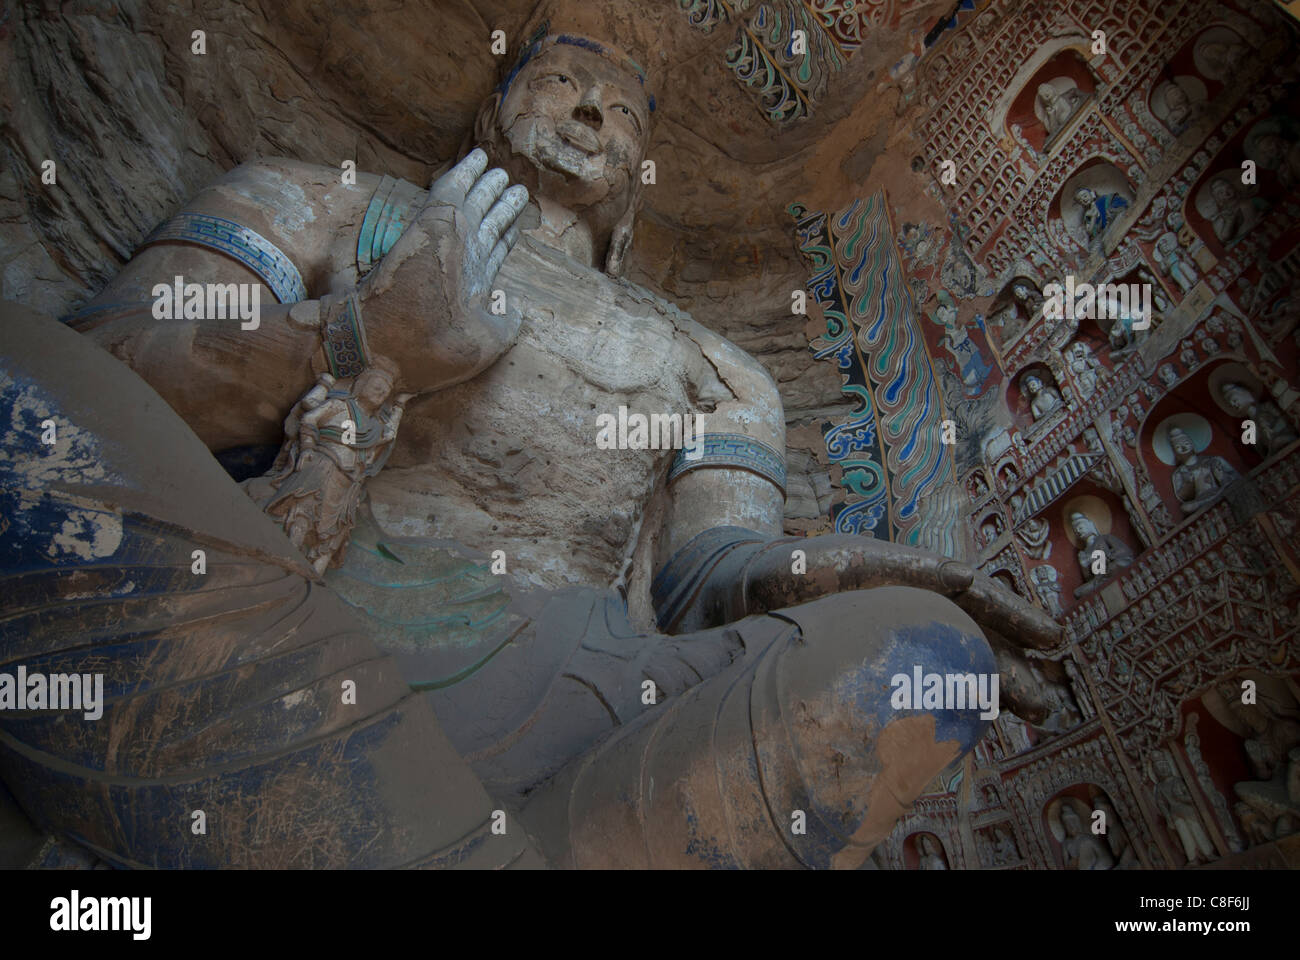 Giant Buddhas at the Yungang Grottoes, ancient Buddhist temple grottoes near Datong, UNESCO World Heritage Site, - Stock Image